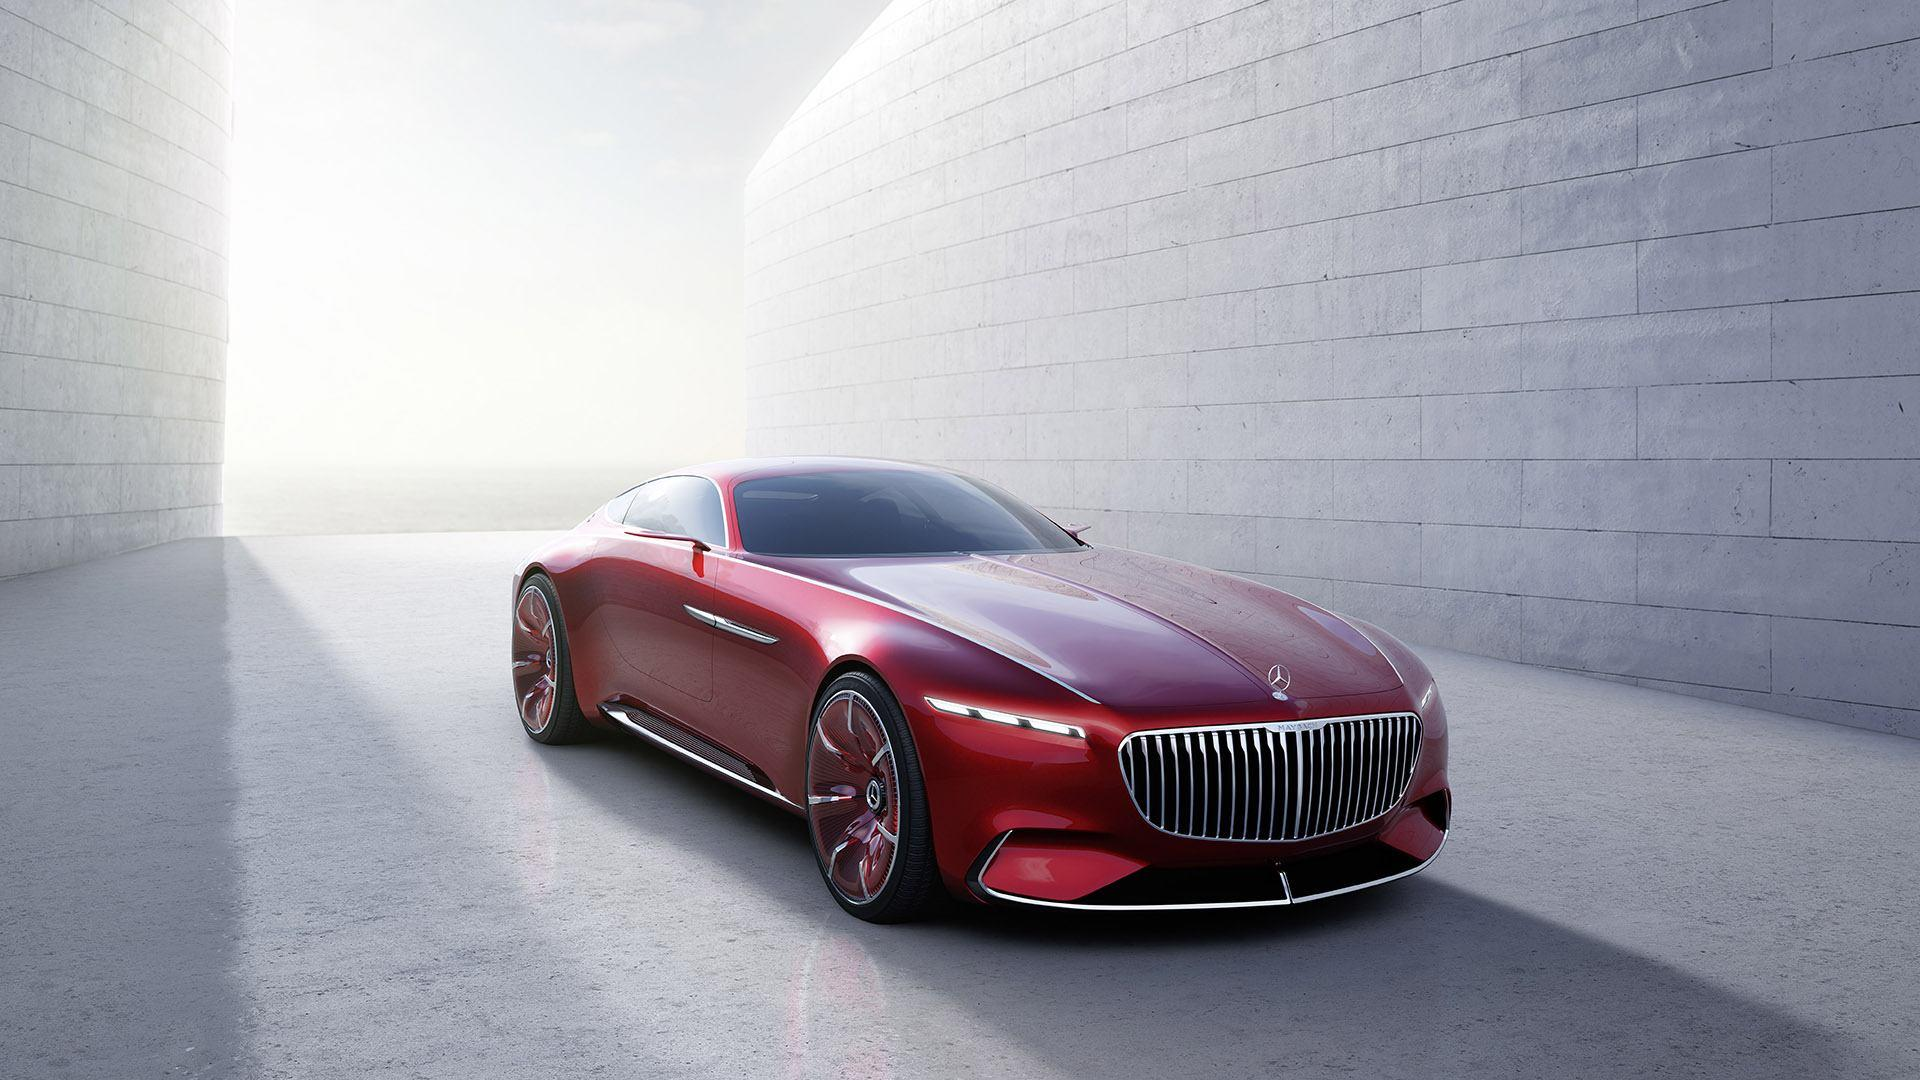 vision_mercedes-maybach_6_monterey_car_week_2016_front